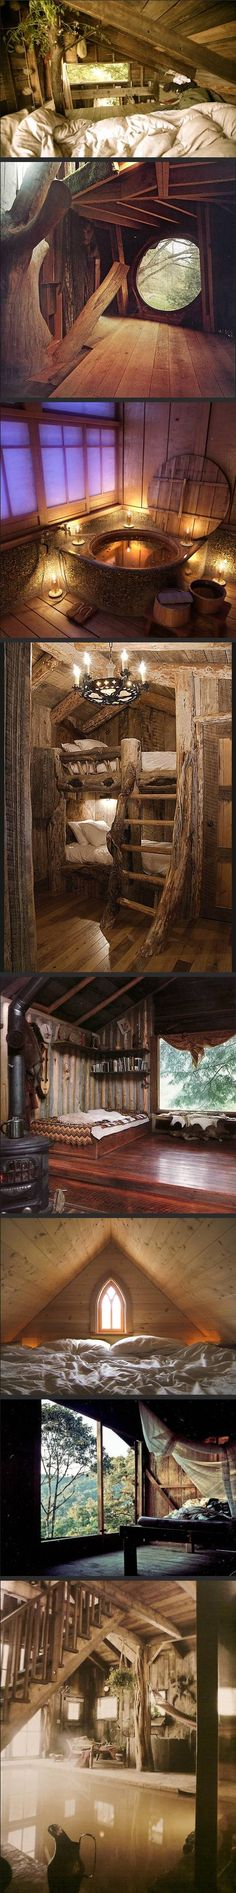 Woodland home--this is kinda cool, if it had more room I might want to live in it...